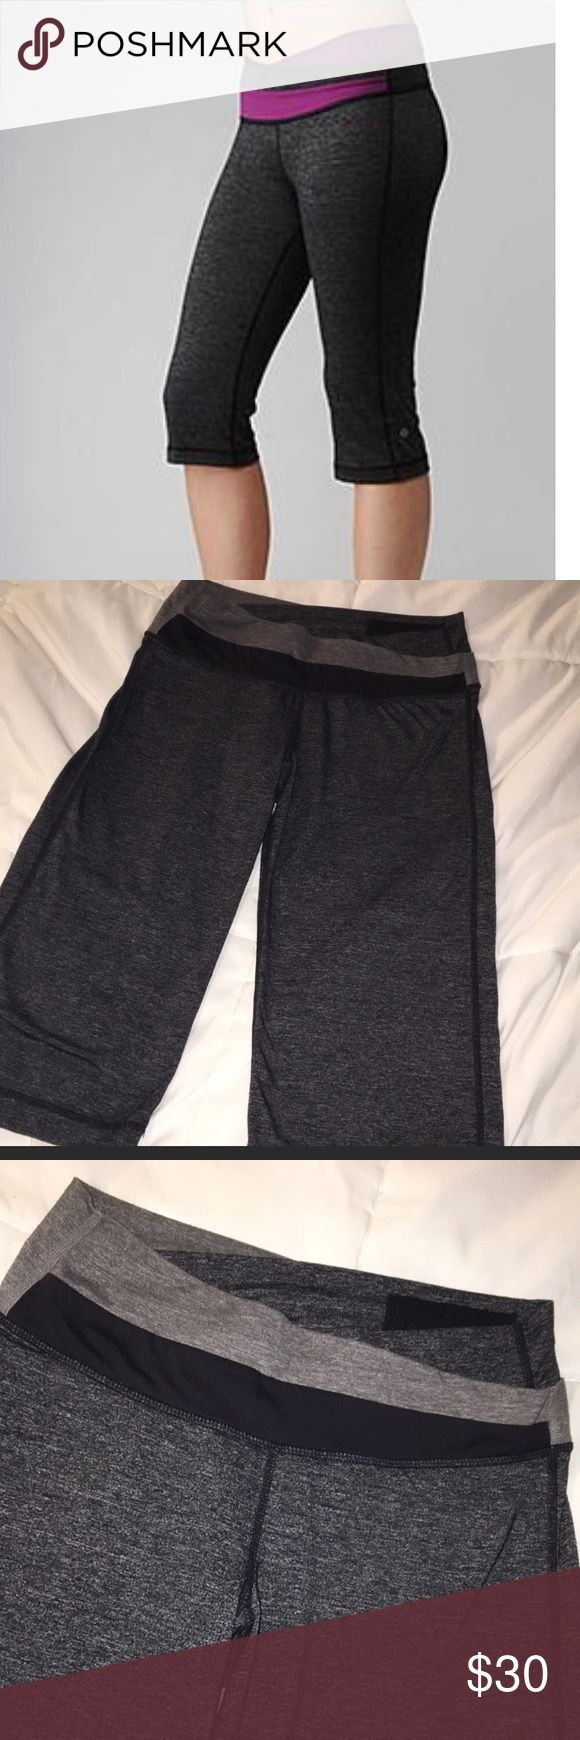 lululemon Astro Crop Heathered black, Astro style waist! There is some pilling between legs, see pics. Great crops tho- super soft and comfortable! z#0102 lululemon athletica Pants Ankle & Cropped